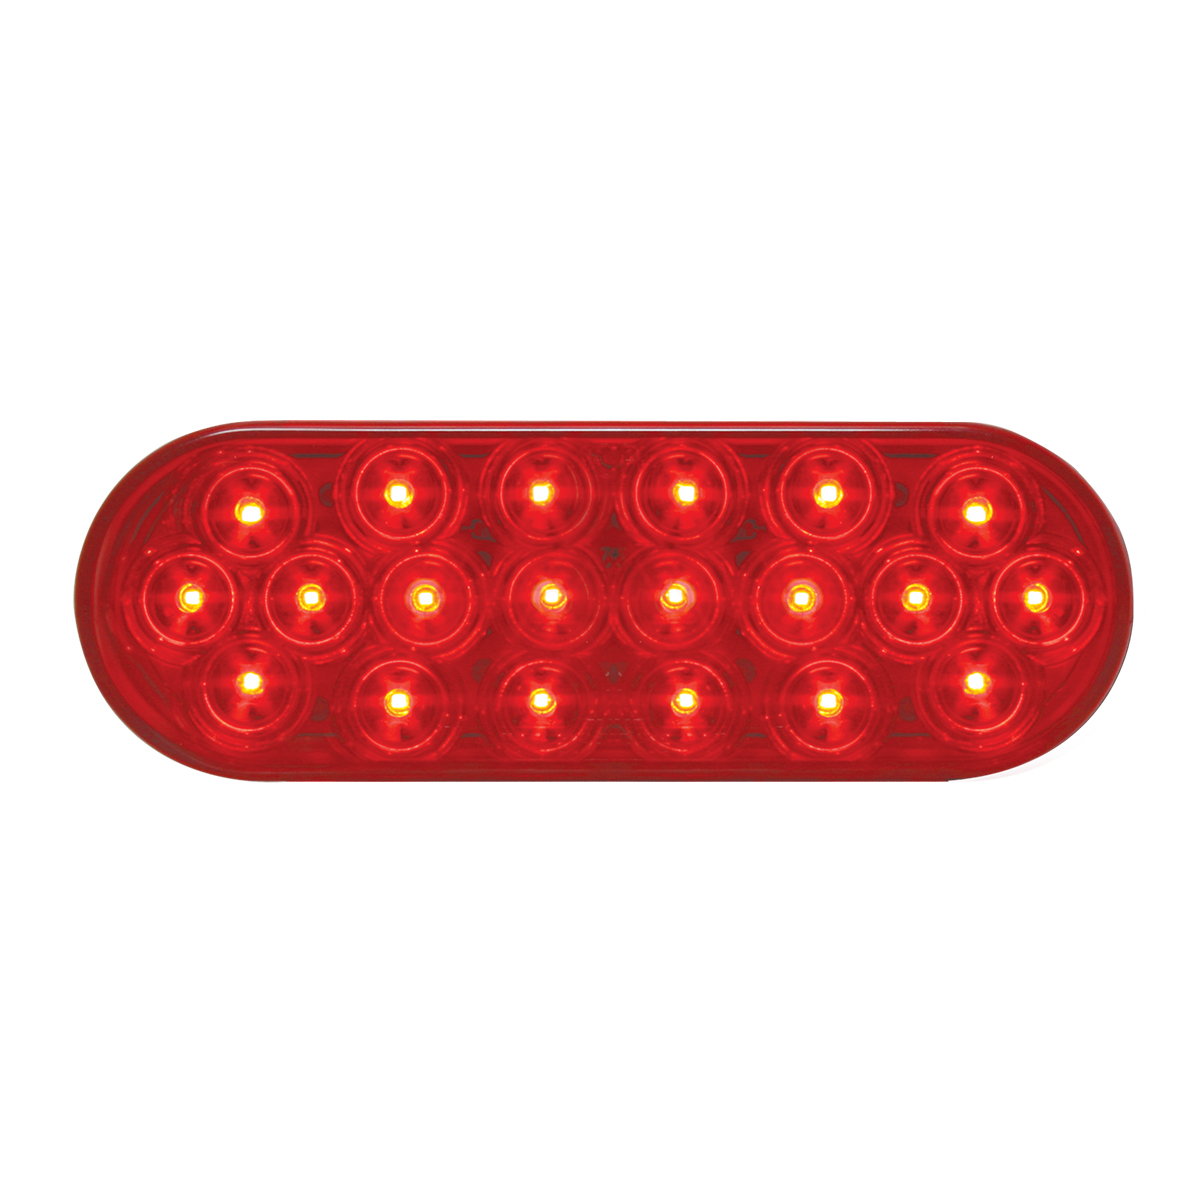 #87721 - Oval Fleet LED Flat Red/Red Light - Slanted